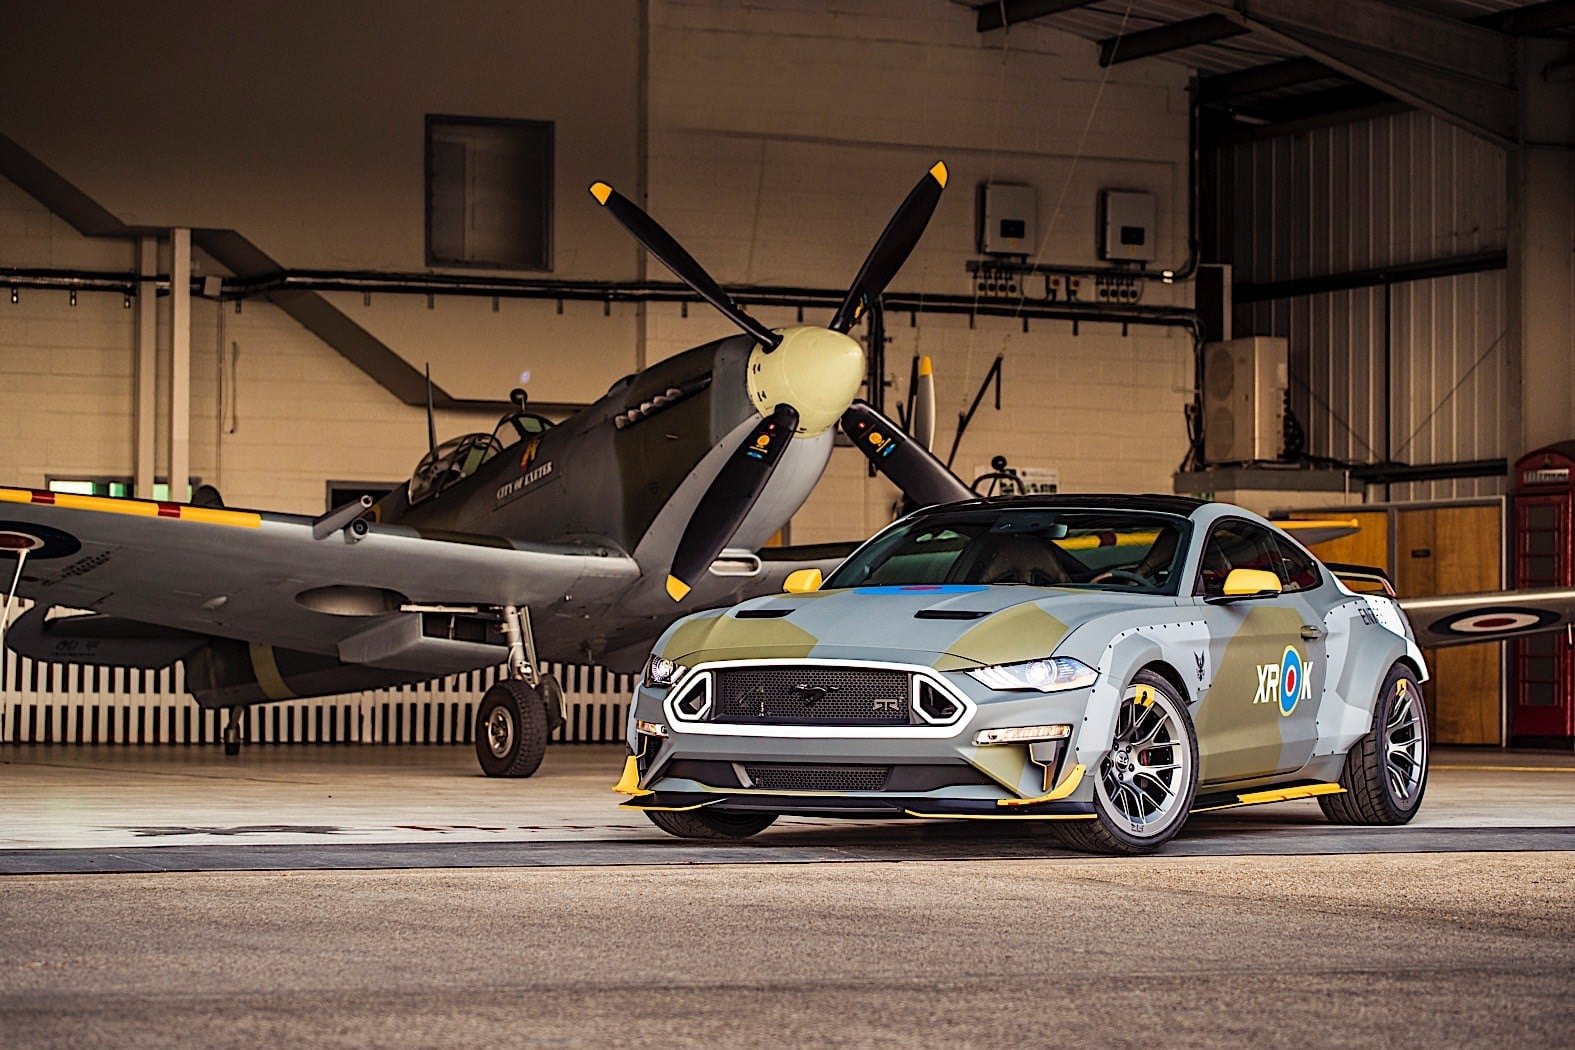 Ford Mustang Gt Eagle Squadron Edici 243 N Especial